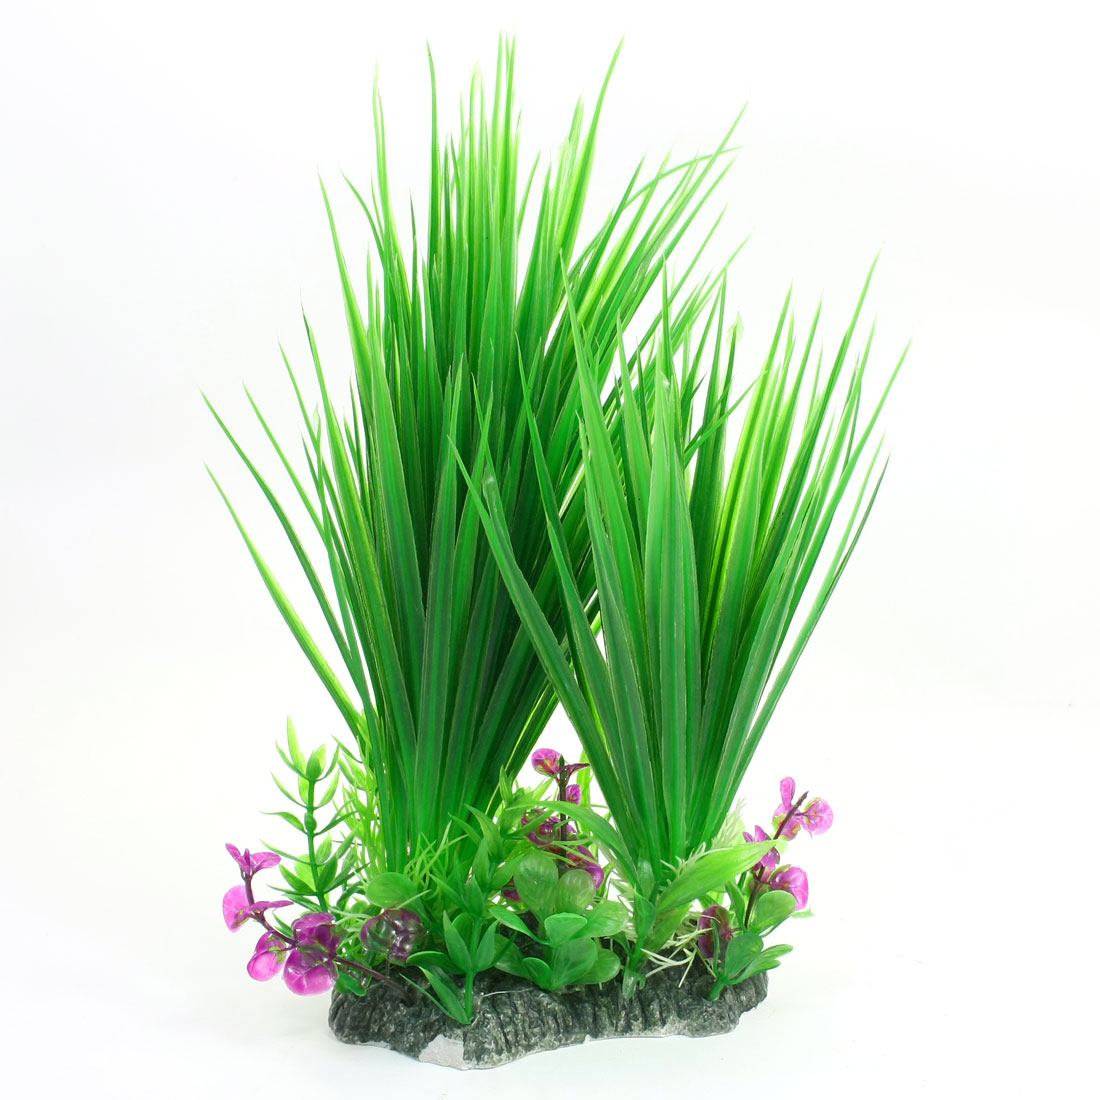 27cm Height Emulational Green Water Plant Grass Decoration for Fish Tank